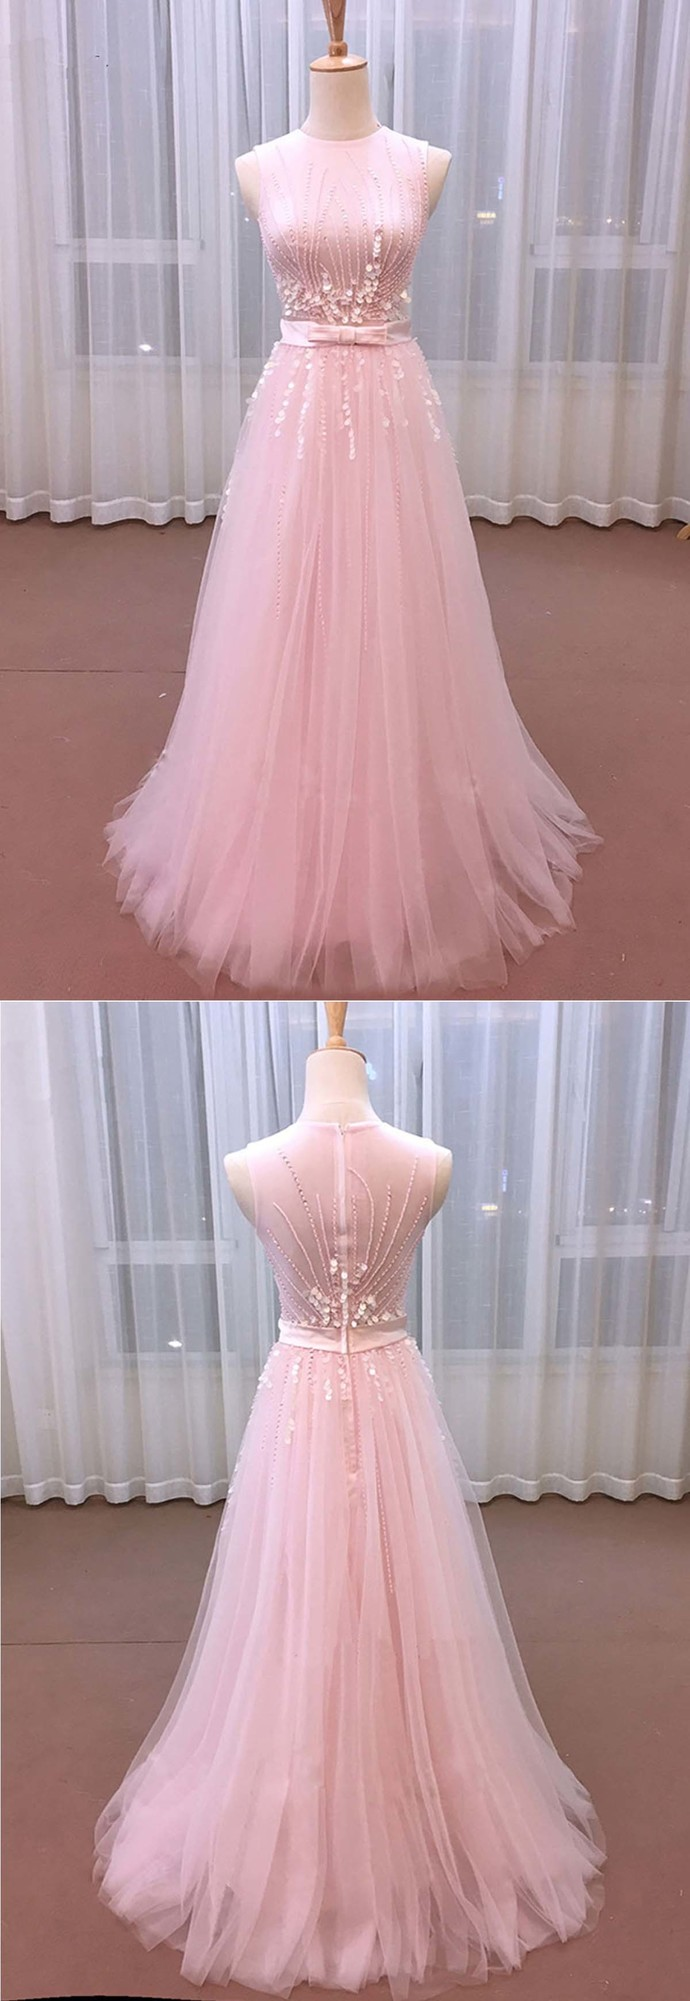 Pink Tulle Sequins Long Sweet 16 Prom Dress With Bowed Sash BD2480